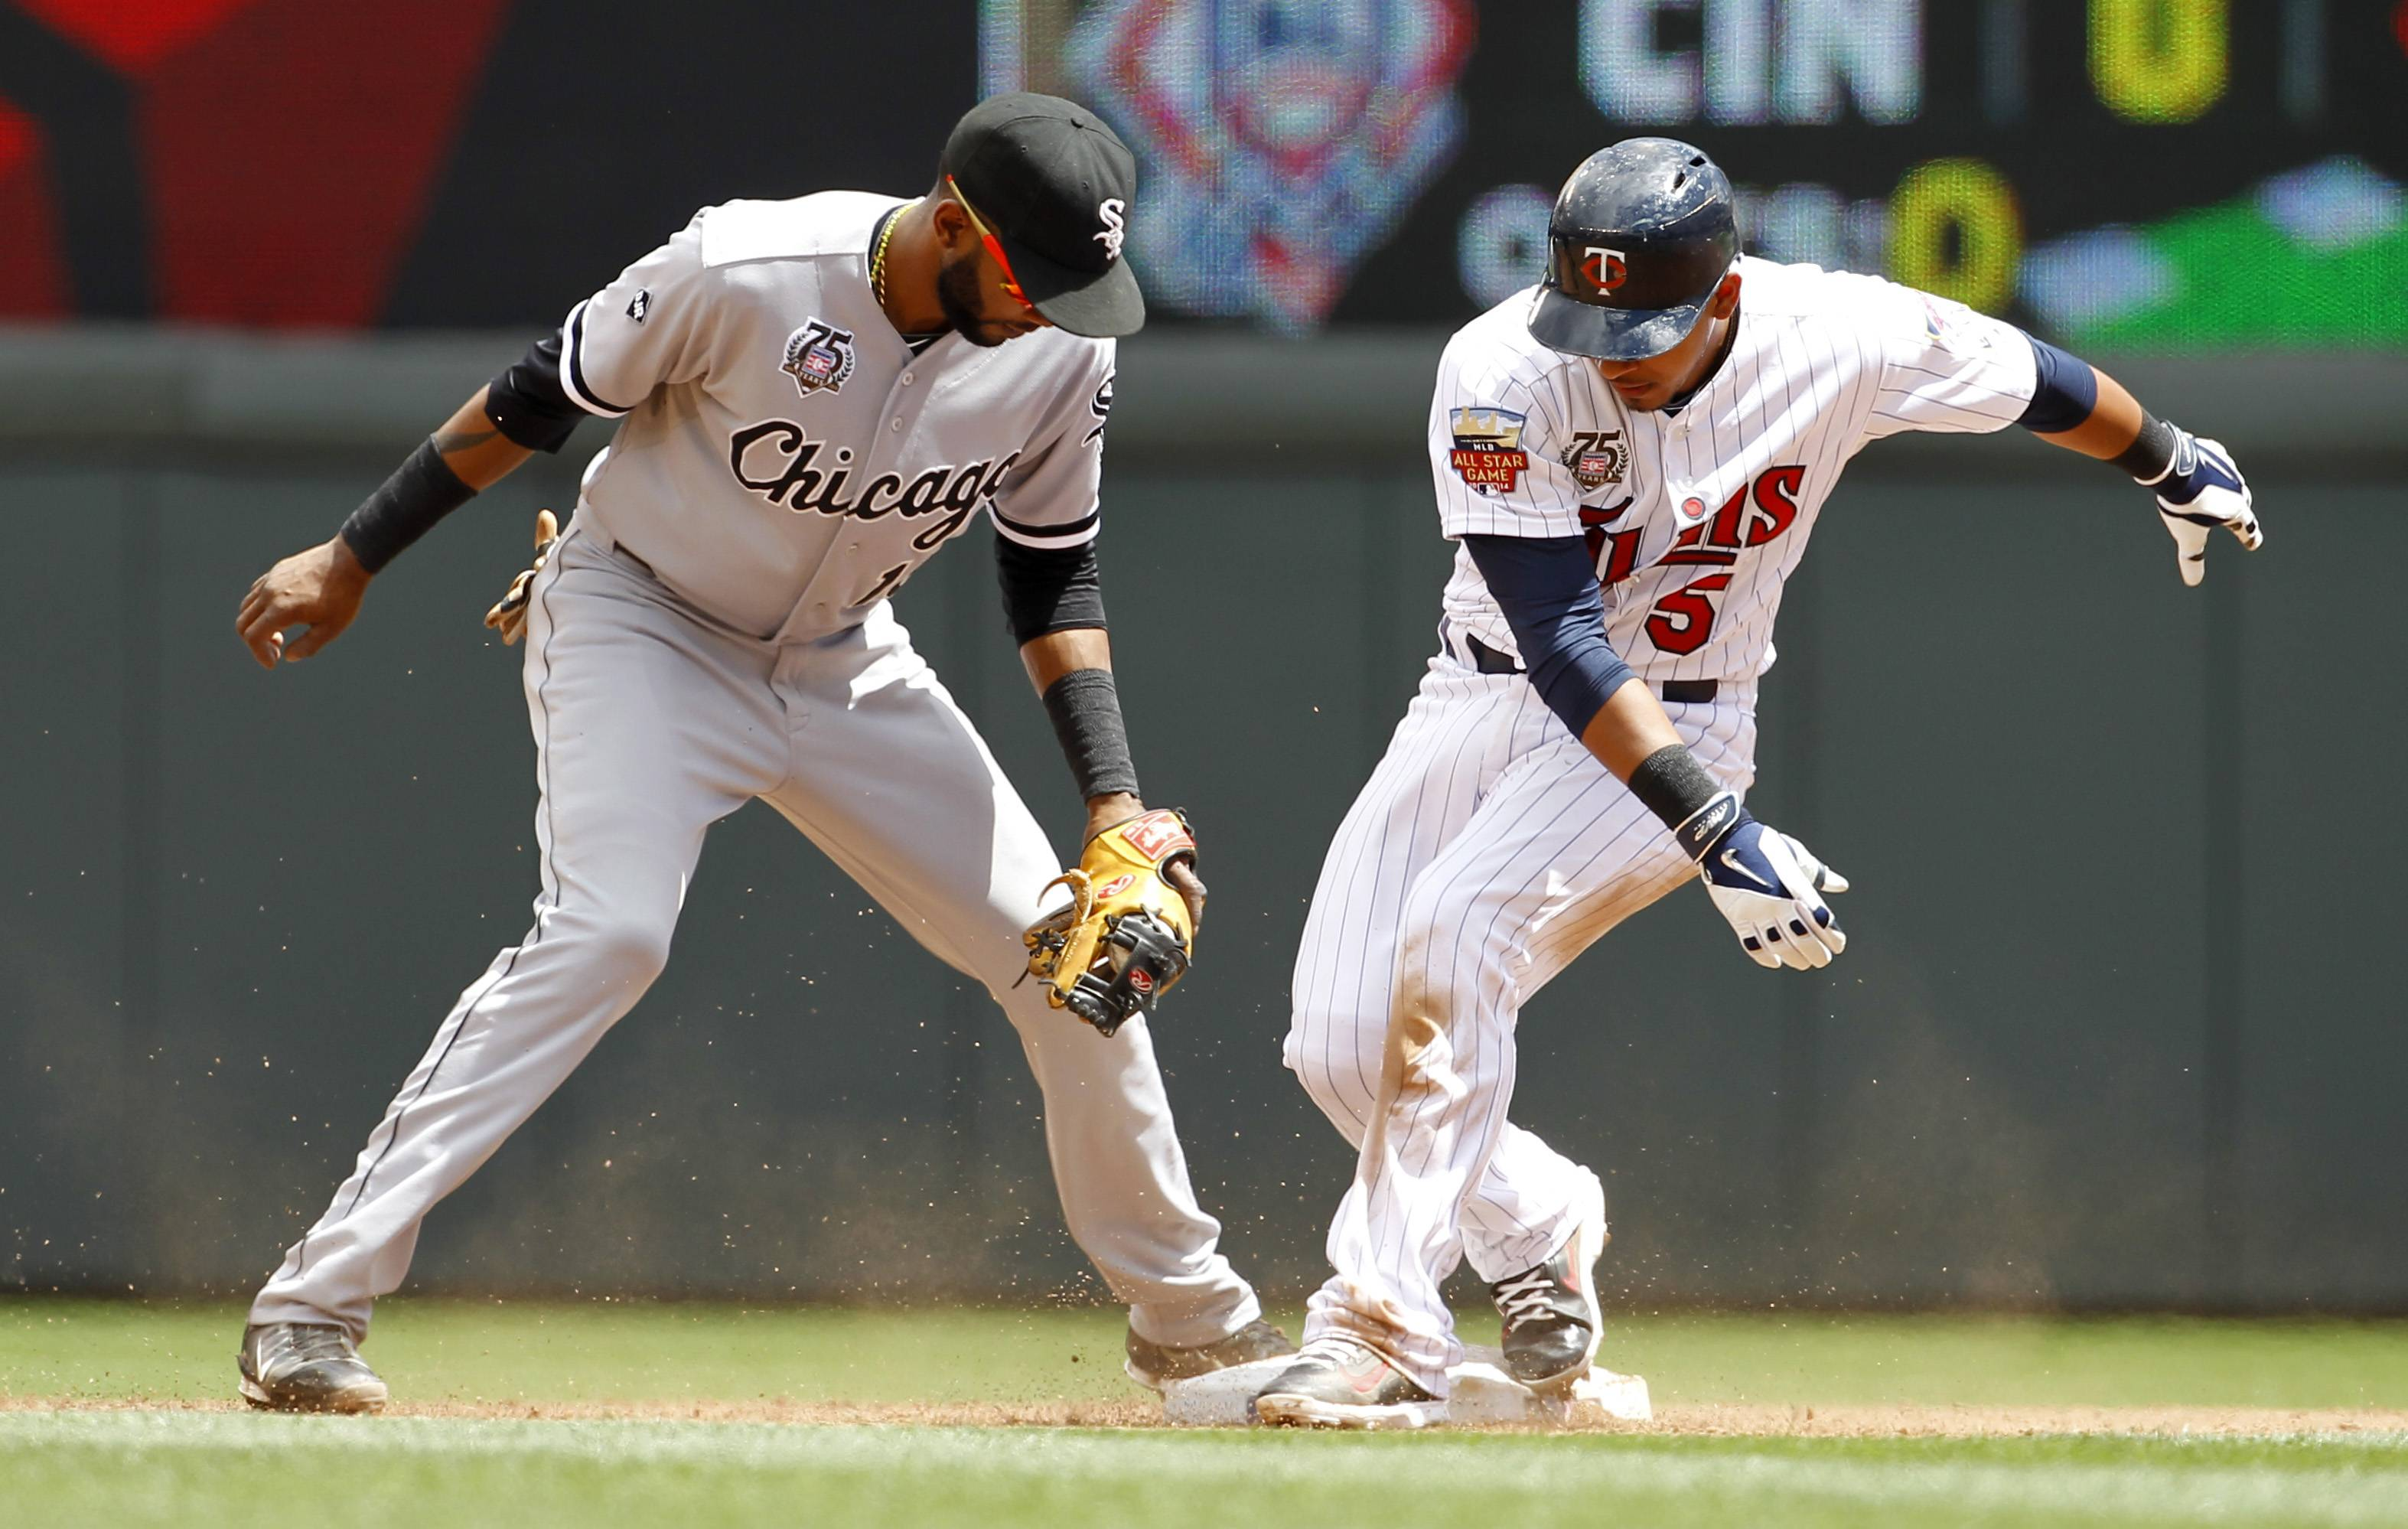 Minnesota Twins' Eduardo Escobar, right, makes it safely to second base on a double to right as Chicago White Sox shortstop Alexei Ramirez gets the late throw during the third inning of a baseball game in Minneapolis, Sunday, July 27, 2014.